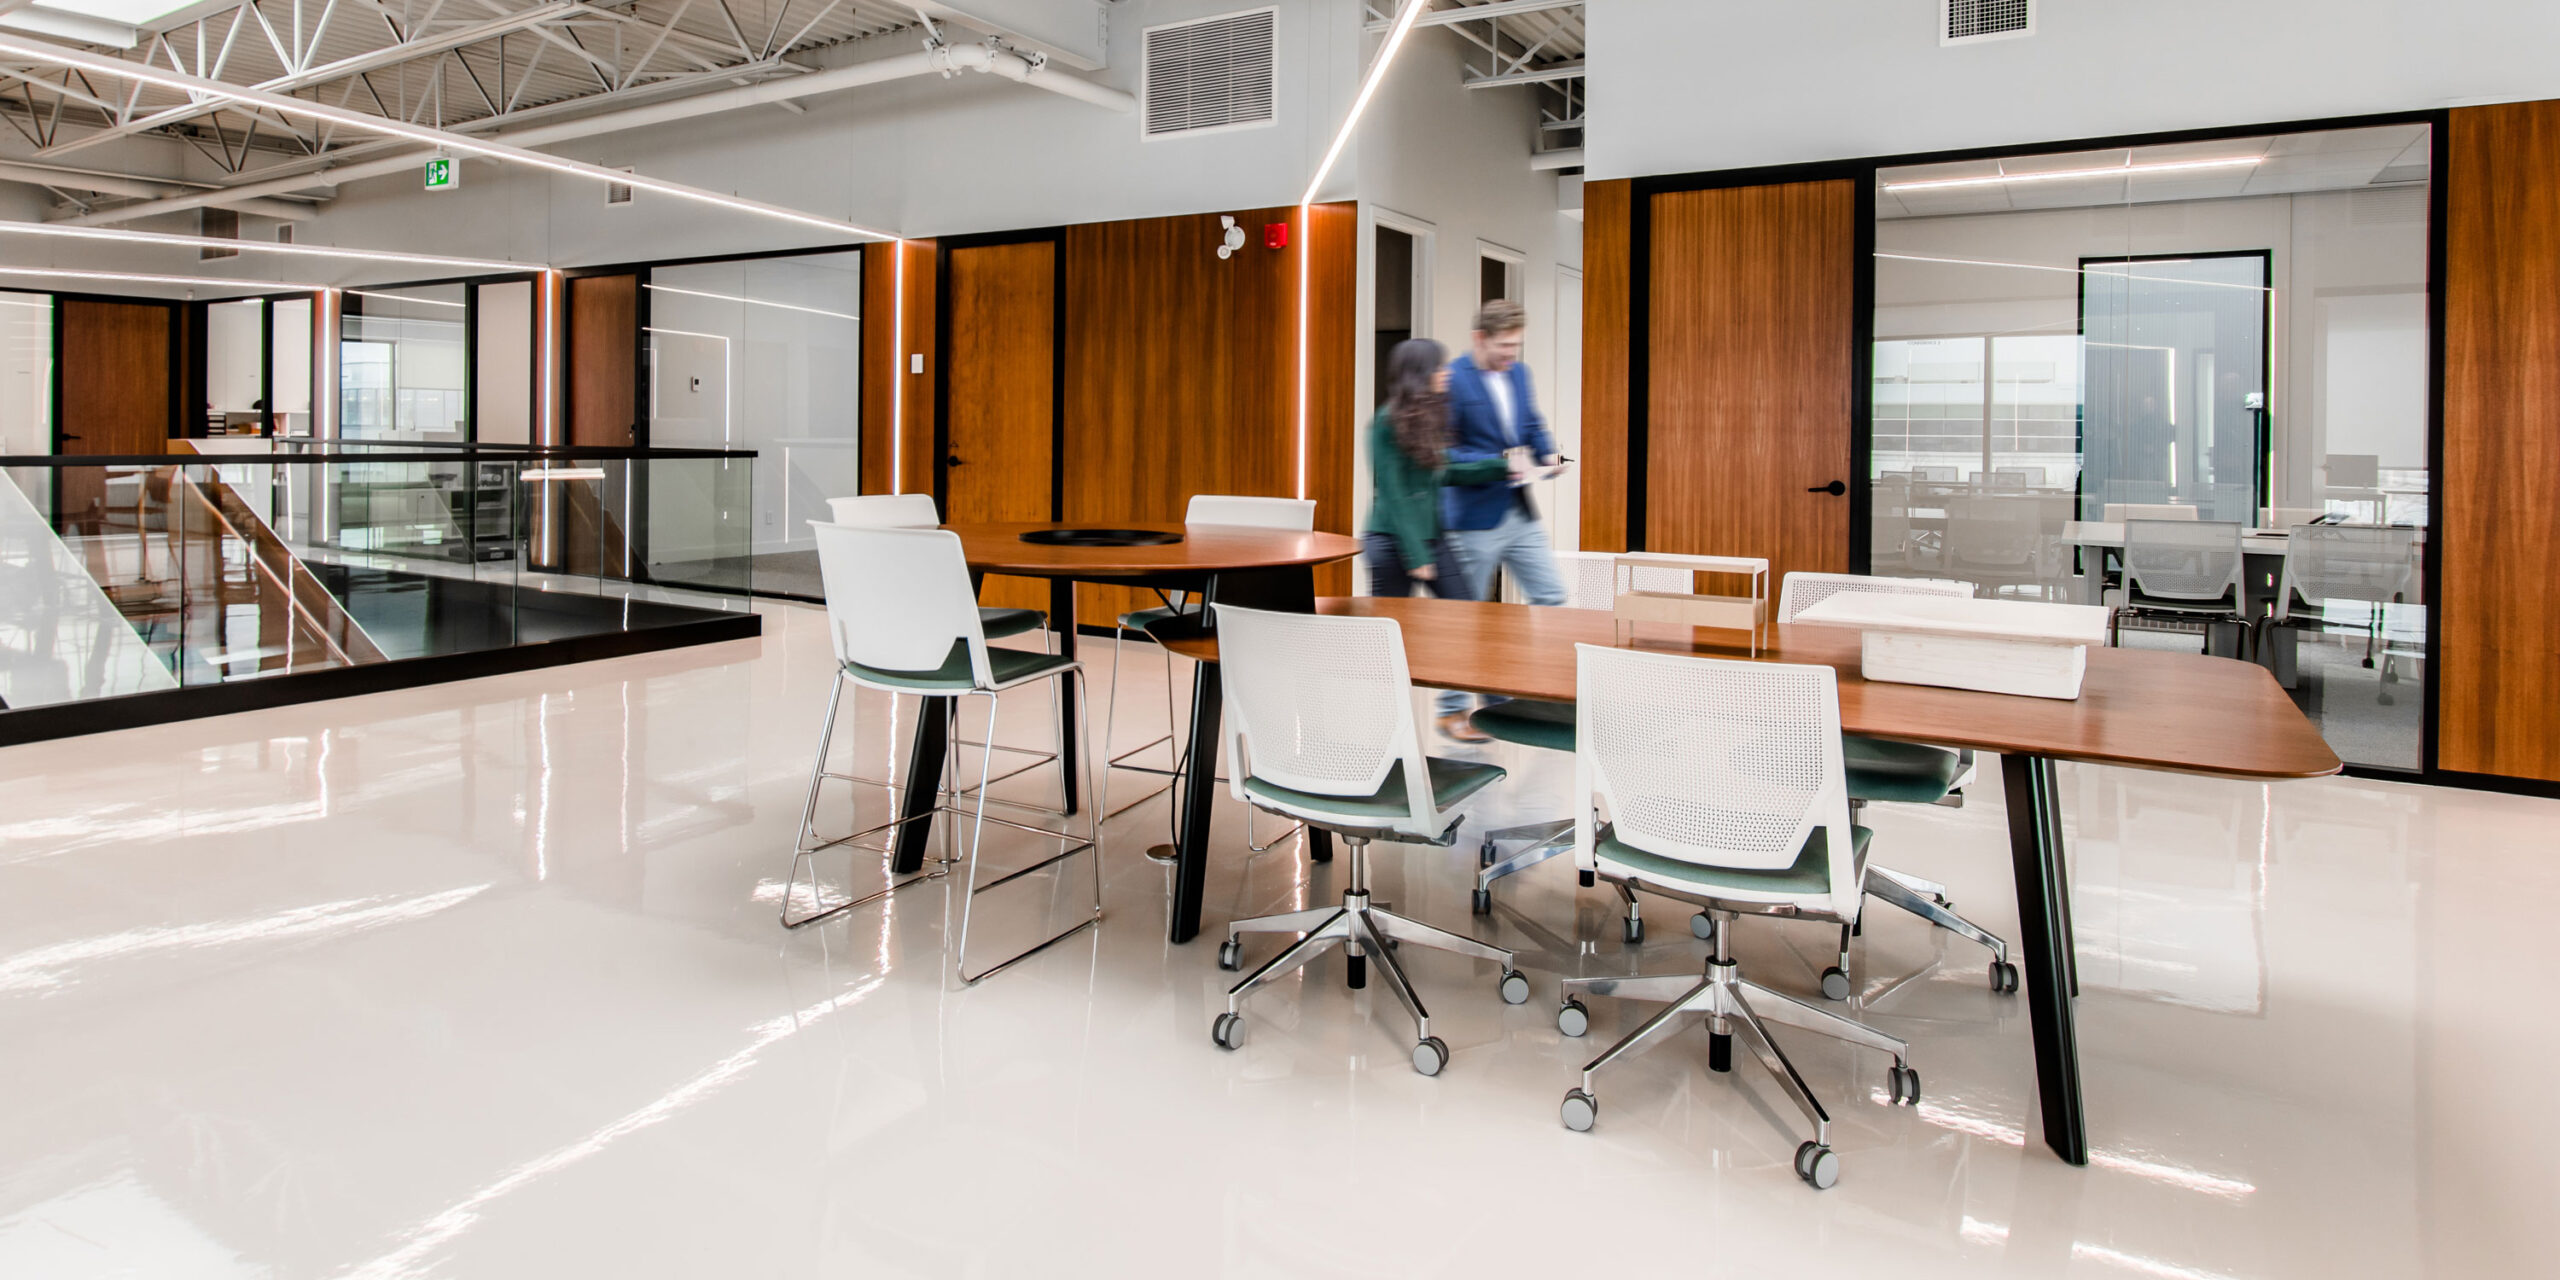 Integrated glass wall systems in open concept office